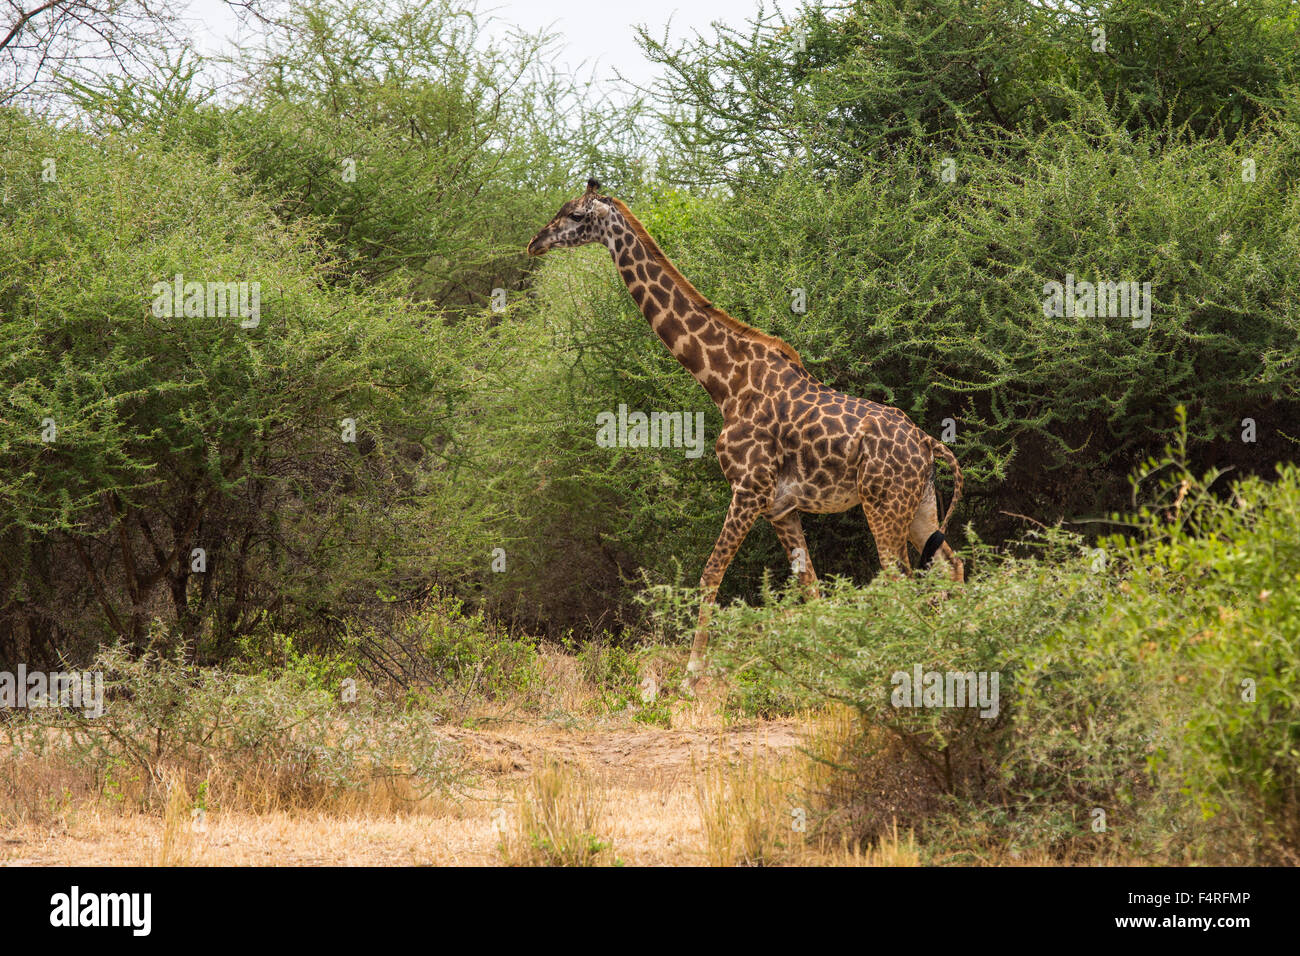 Africa, trees, giraffe, Lake Manyara, national park, scenery, landscape, safari, travel, savanna, mammals, Tanzania, - Stock Image